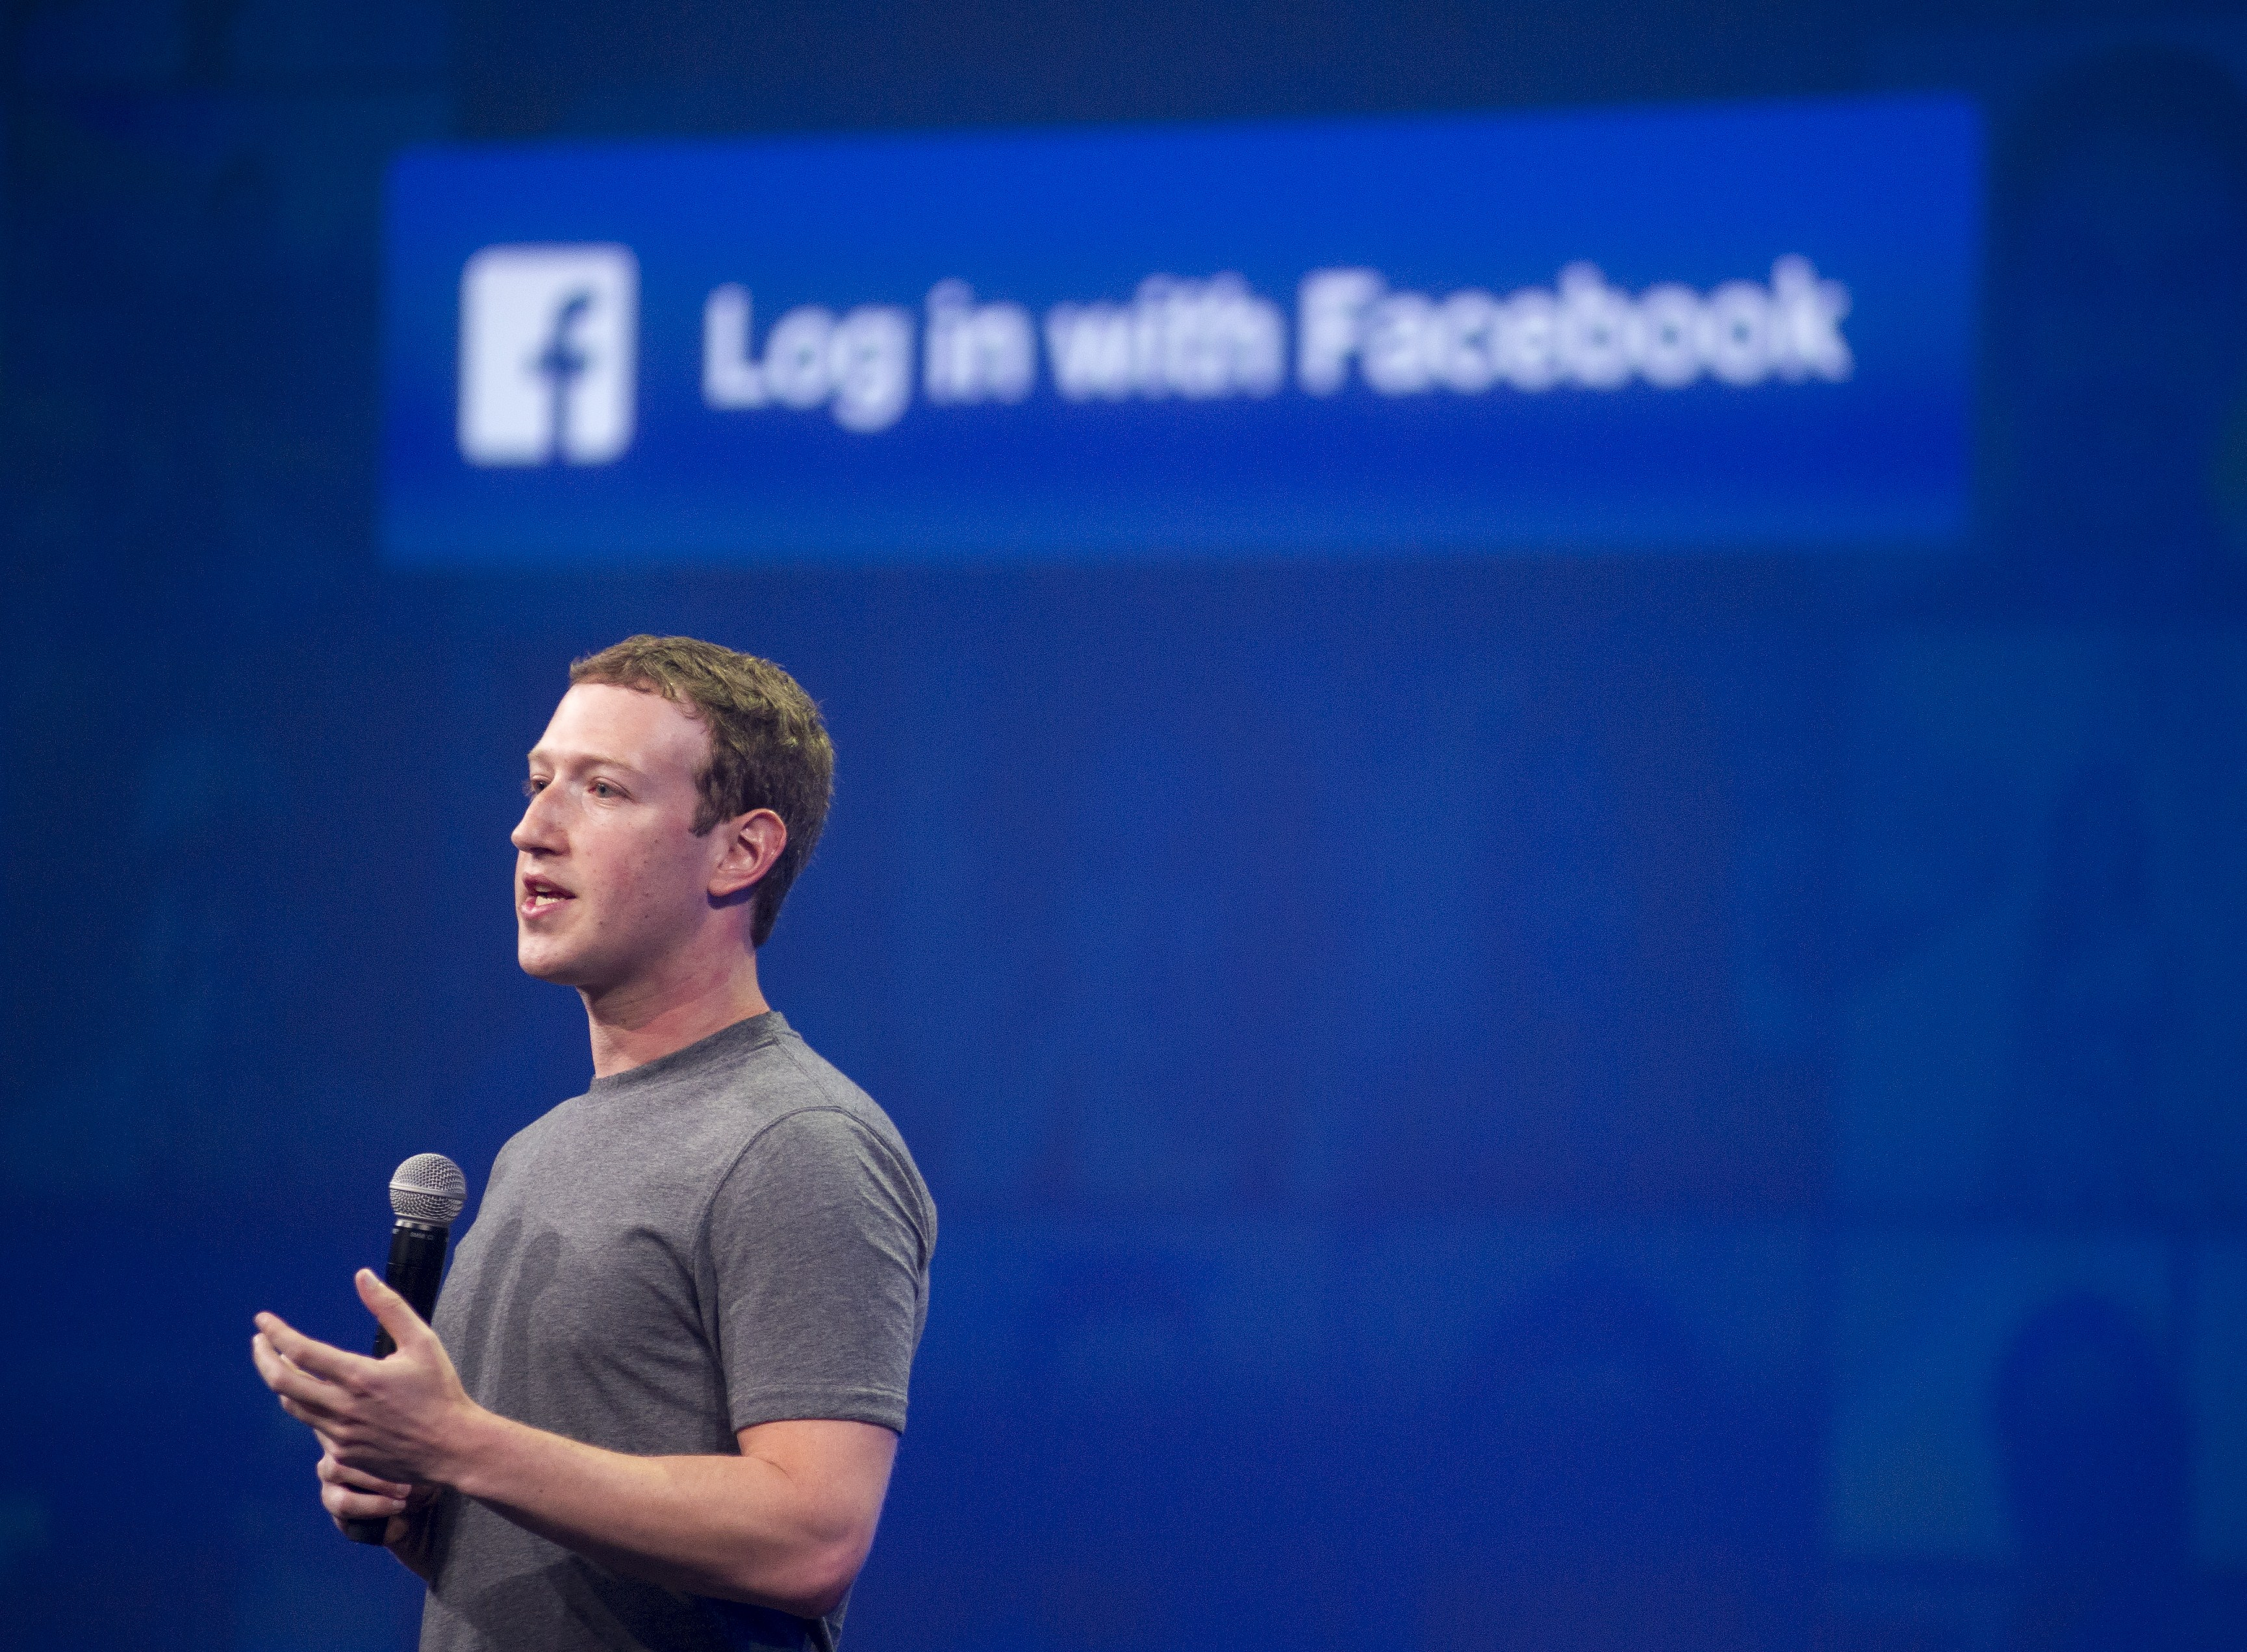 Facebook CEO Mark Zuckerberg speaks at the F8 summit in San Francisco, on March 25, 2015.